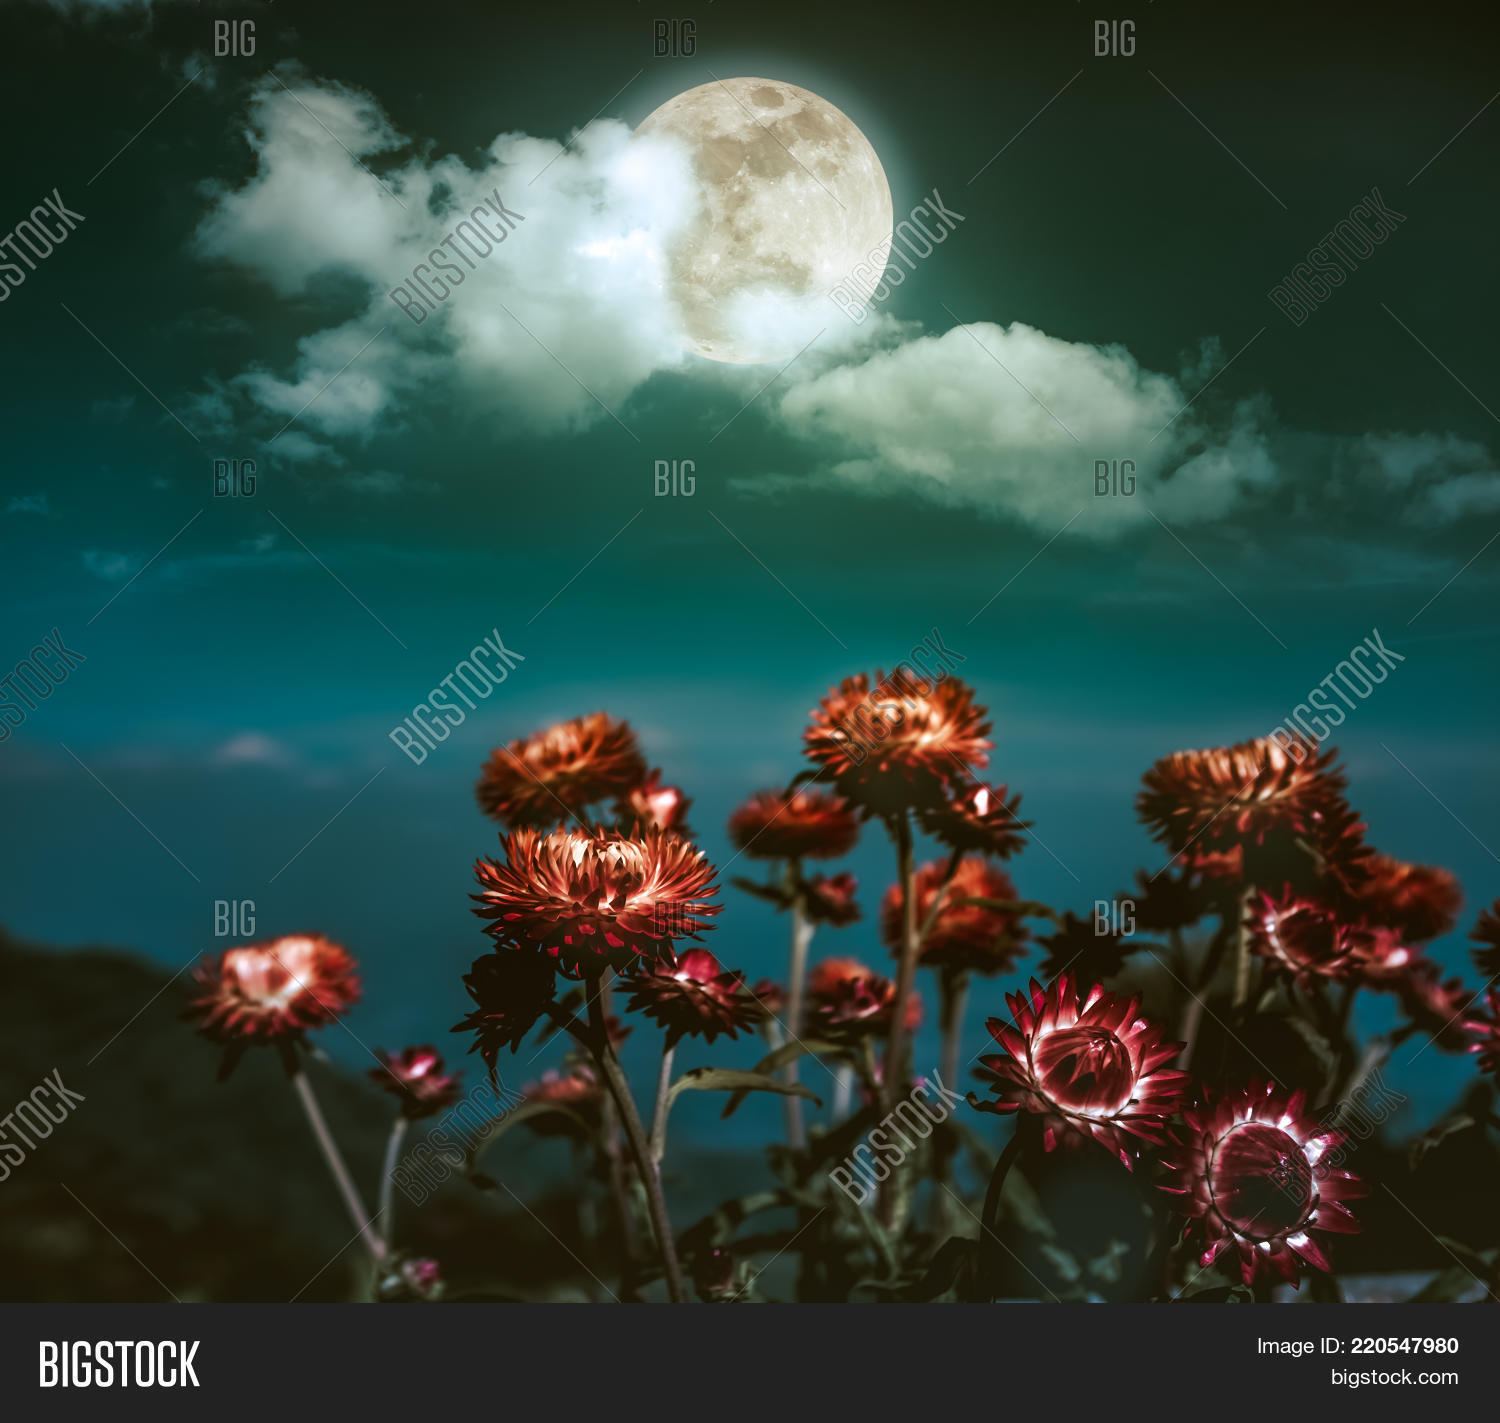 Beautiful night landscape dark image photo bigstock beautiful night landscape of dark emerald green sky with full moon behind clouds above dry straw izmirmasajfo